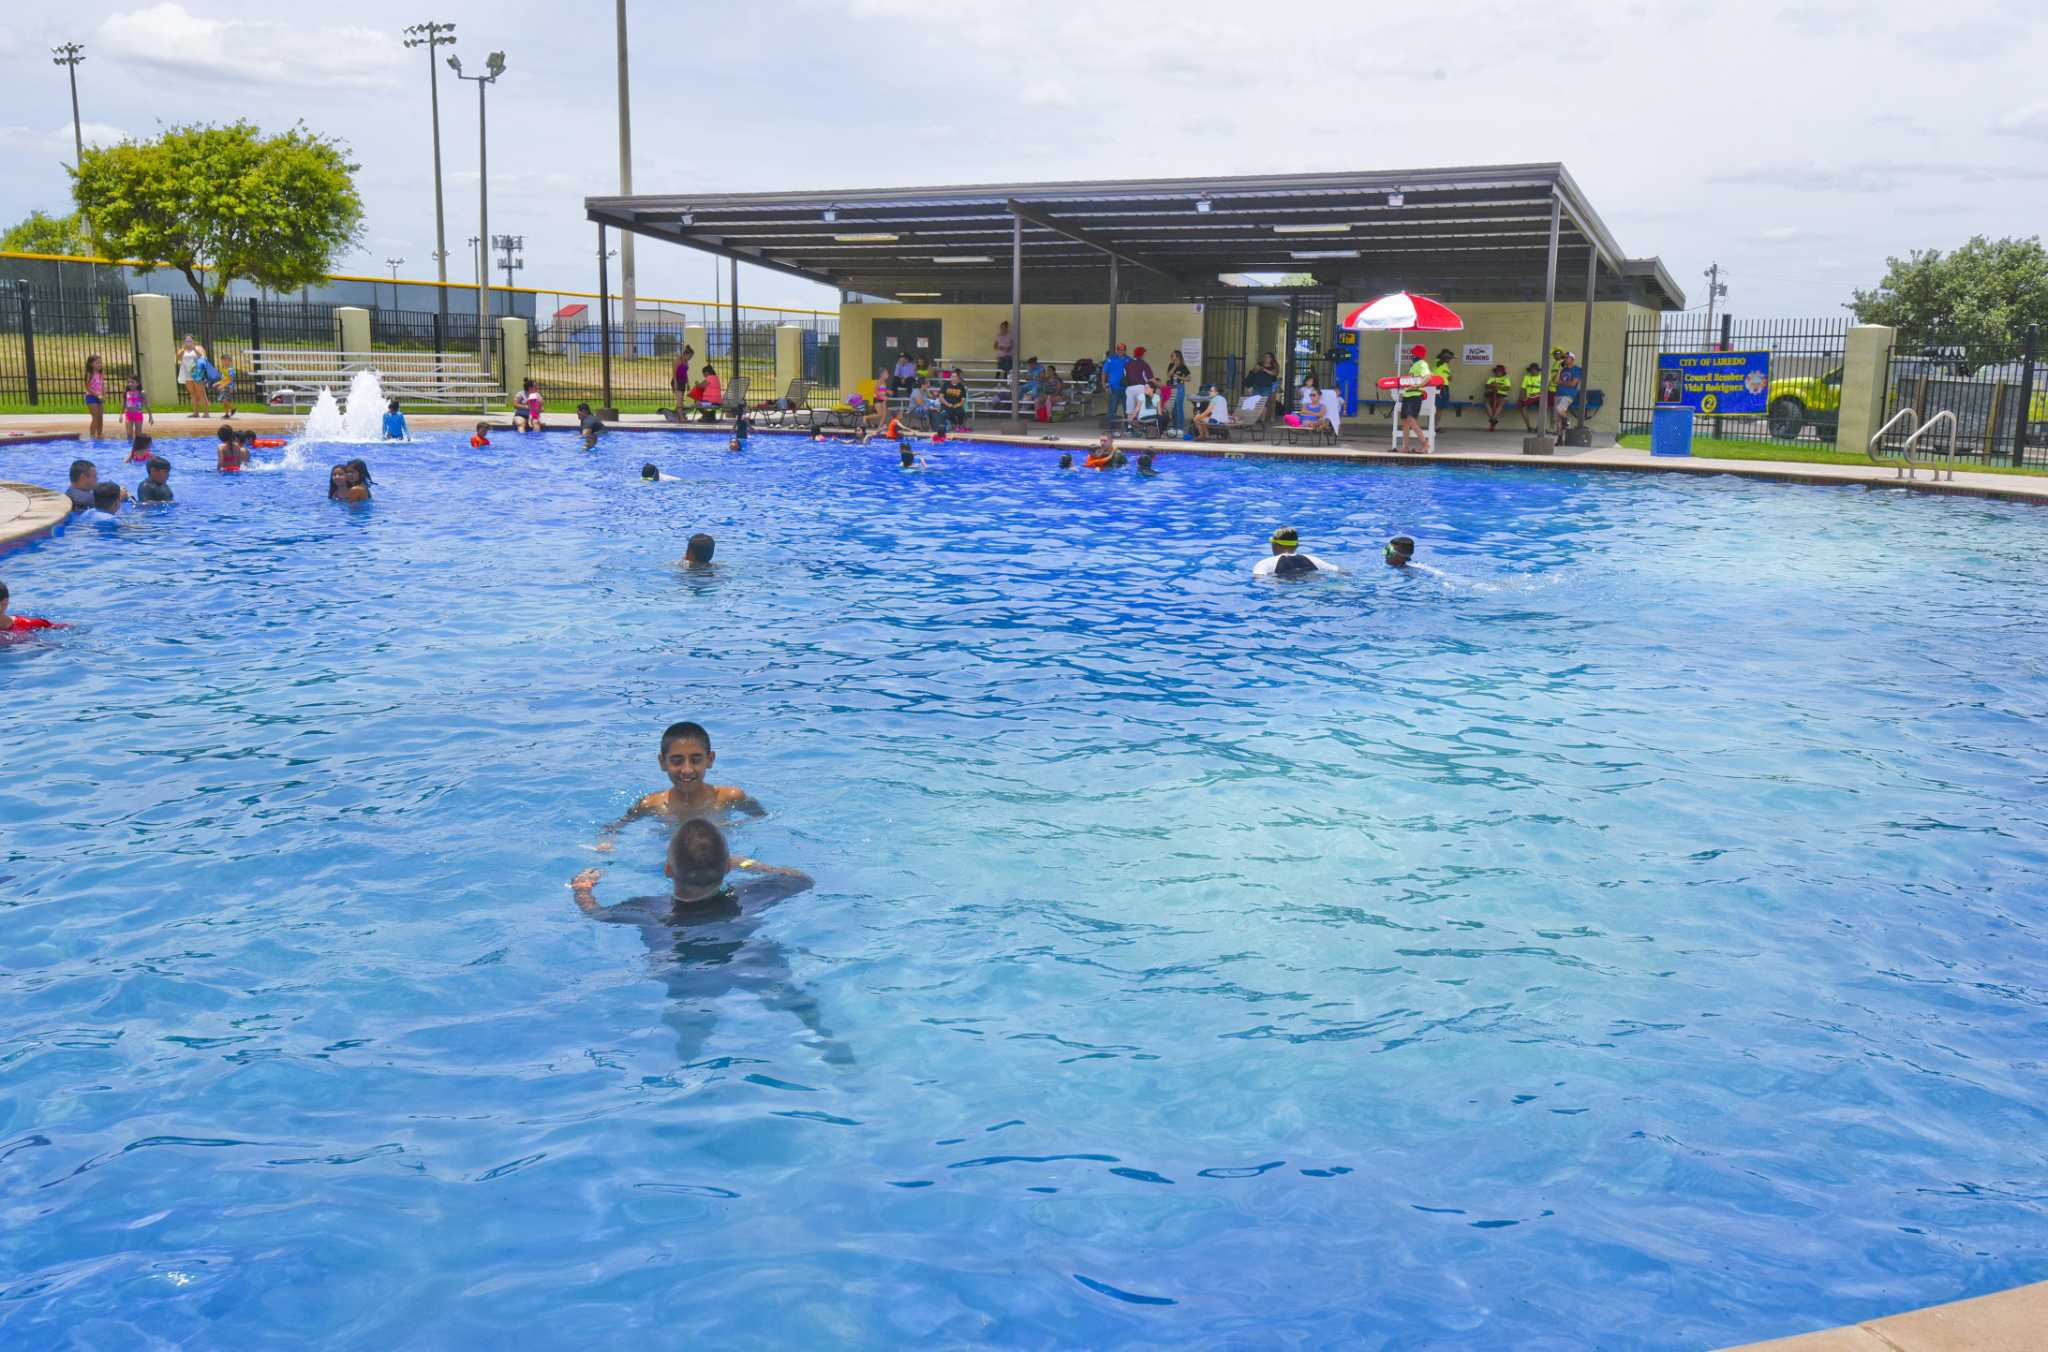 Future of Laredo water park project to be discussed